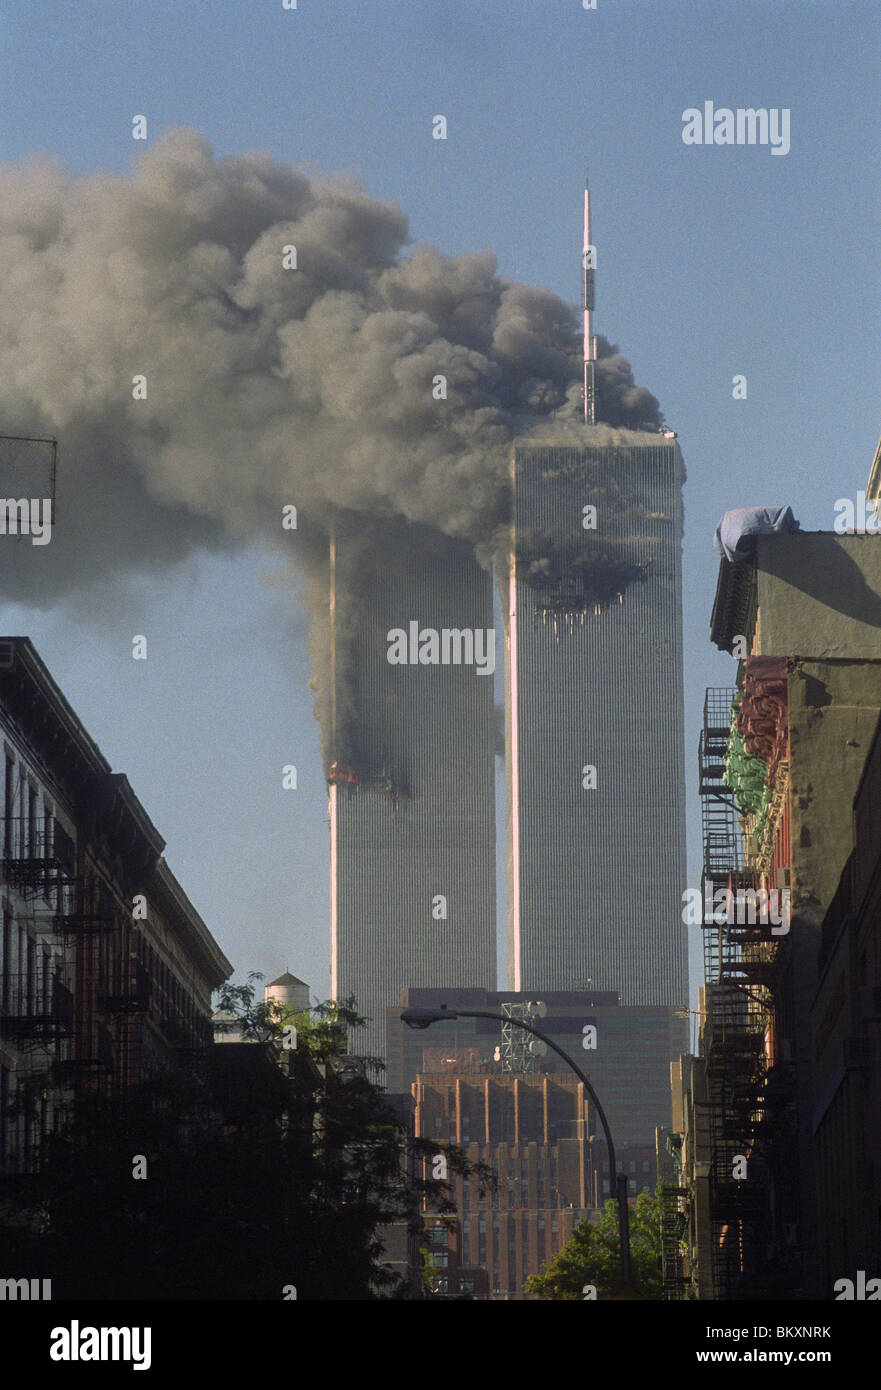 Twin towers of the World Trade Center on the morning of September 11 2001 ©Stacy Walsh Rosenstock/Alamy - Stock Image